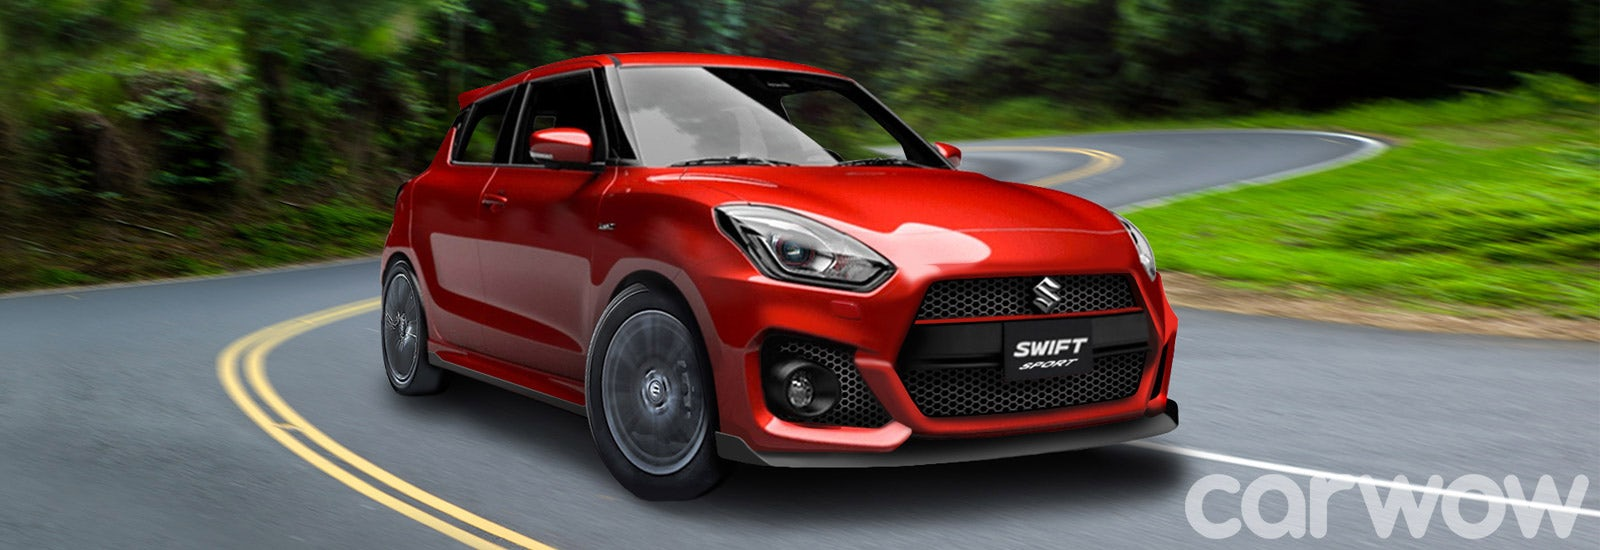 2018 suzuki swift sport price specs and release date carwow. Black Bedroom Furniture Sets. Home Design Ideas